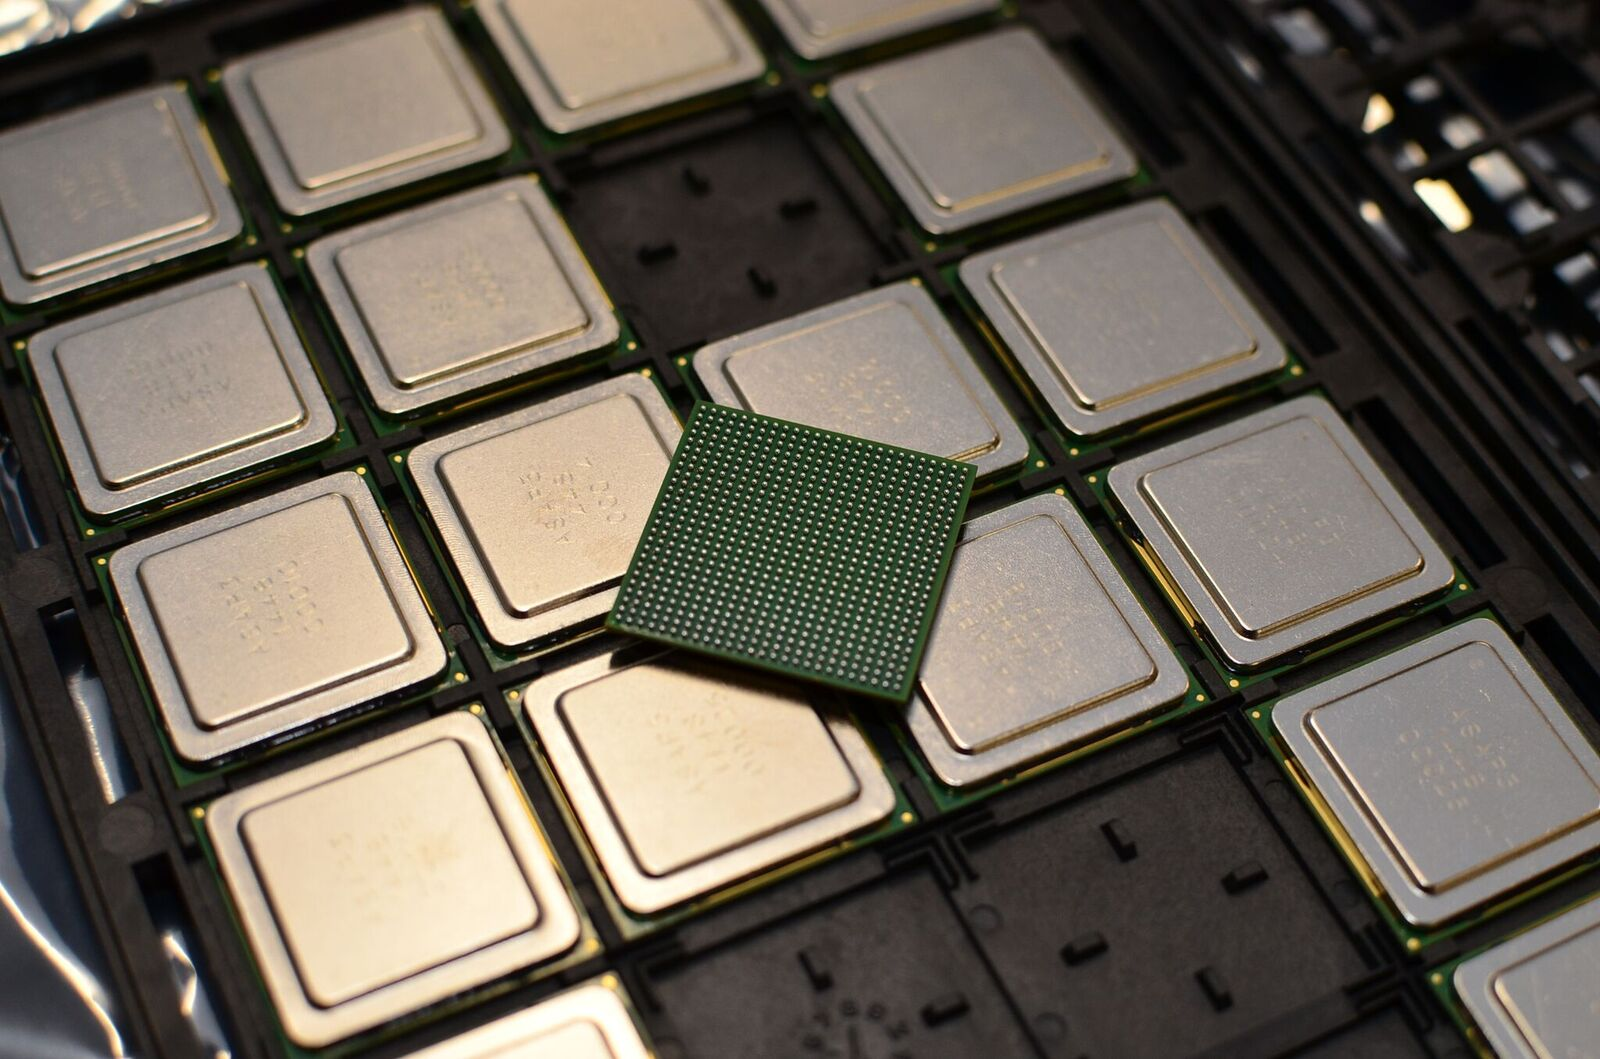 Most Powerful Processor